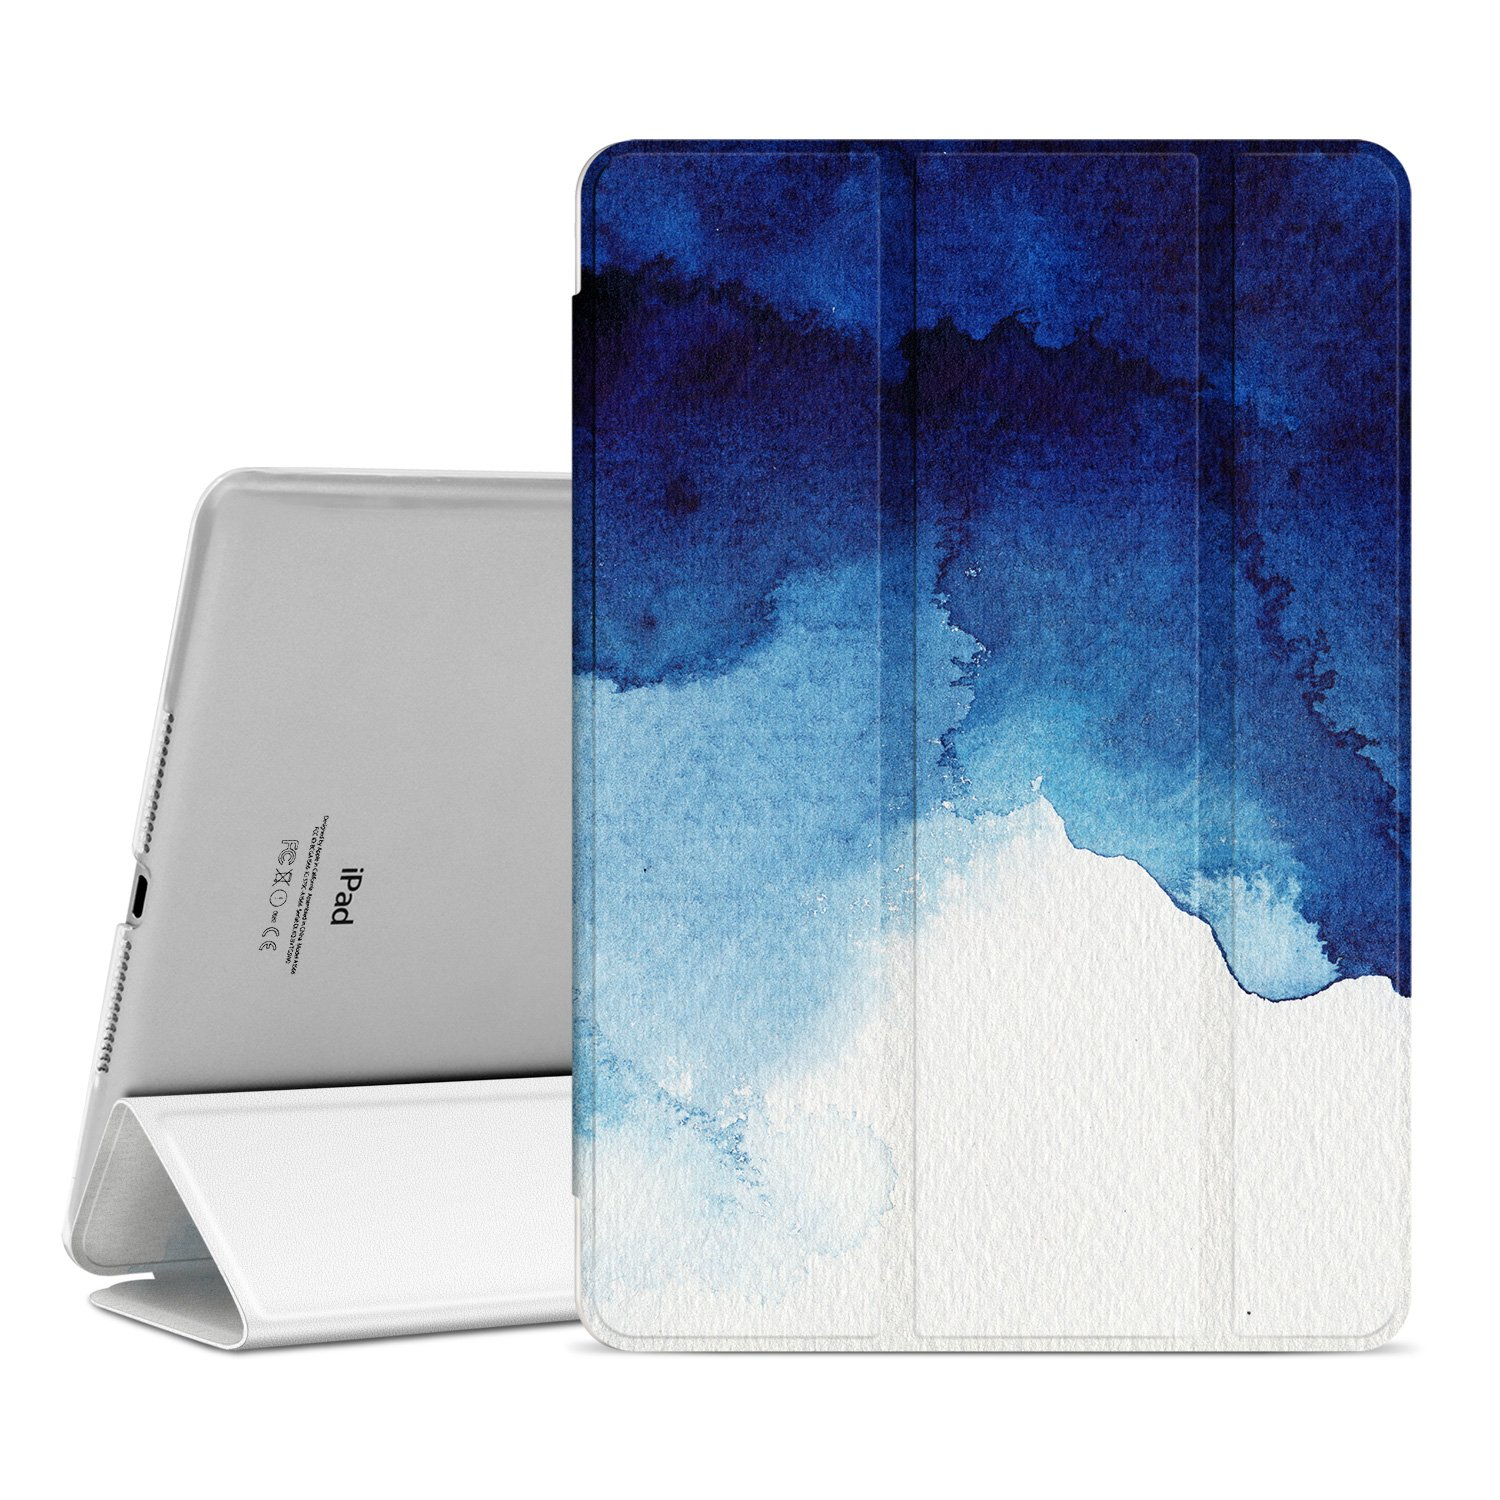 Ayotu New iPad 9.7 inch 2018/2017 Case,Slim Lightweight Auto Wake/Sleep Smart Stand Protective Cover with Translucent Frosted Back Magnetic Case for New iPad 9.7 inch Release Tablet-The Watercolor